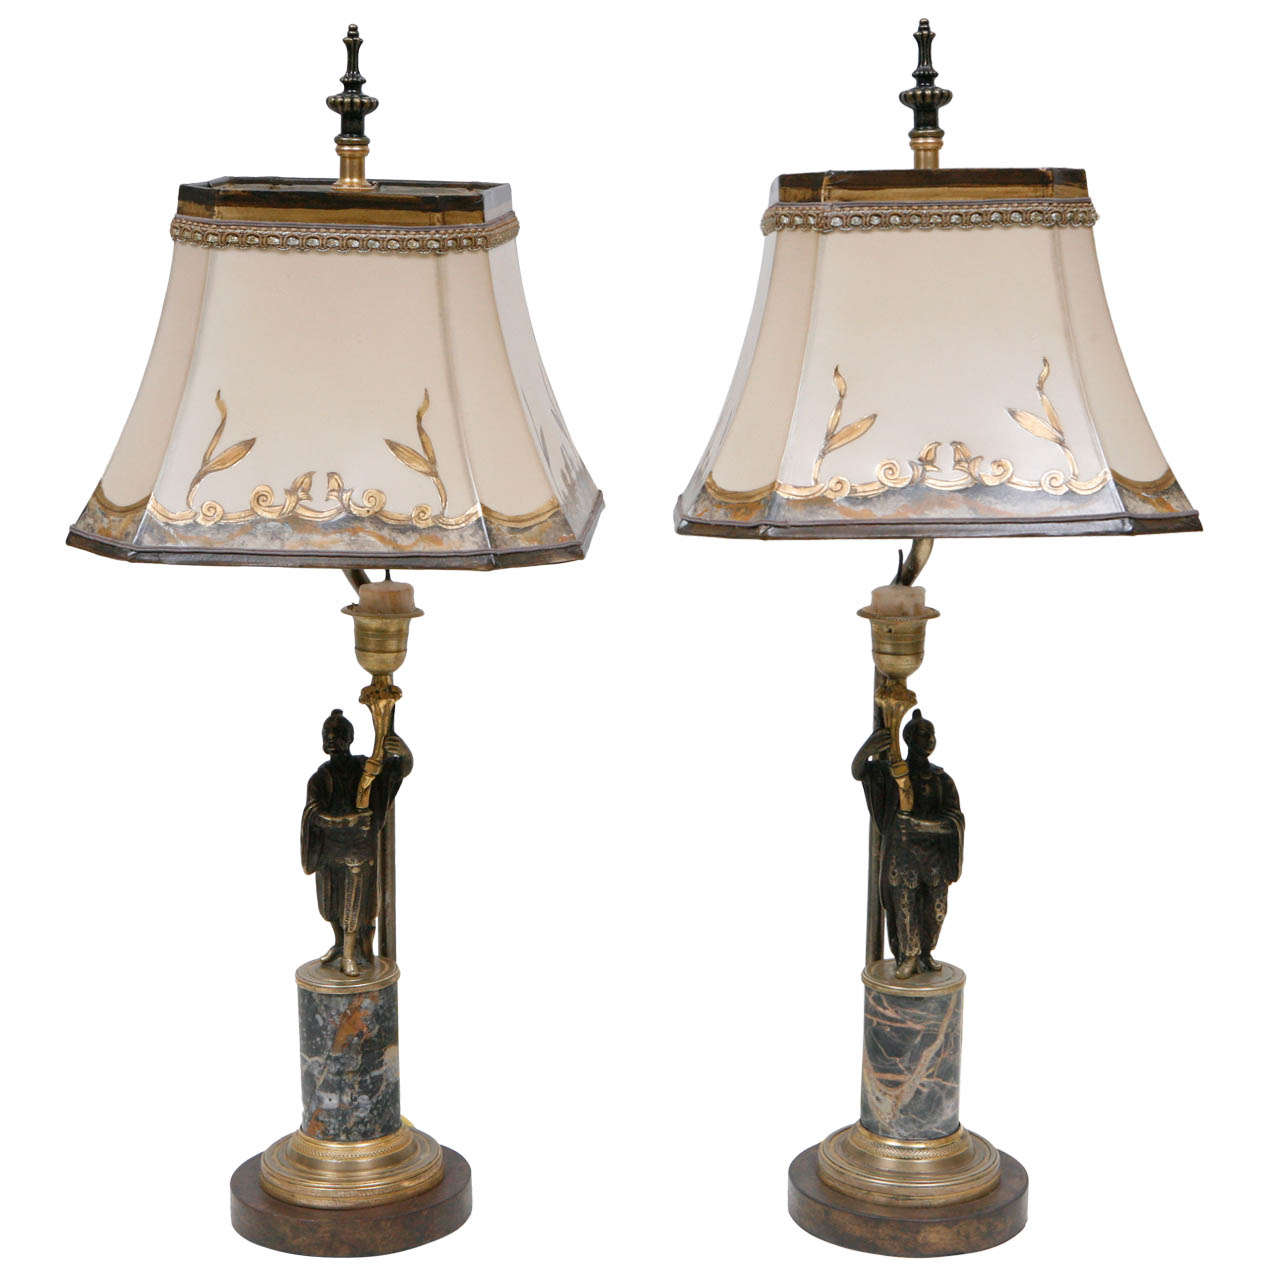 Pair of 19th c. French  Bronze Candlestick Lamps